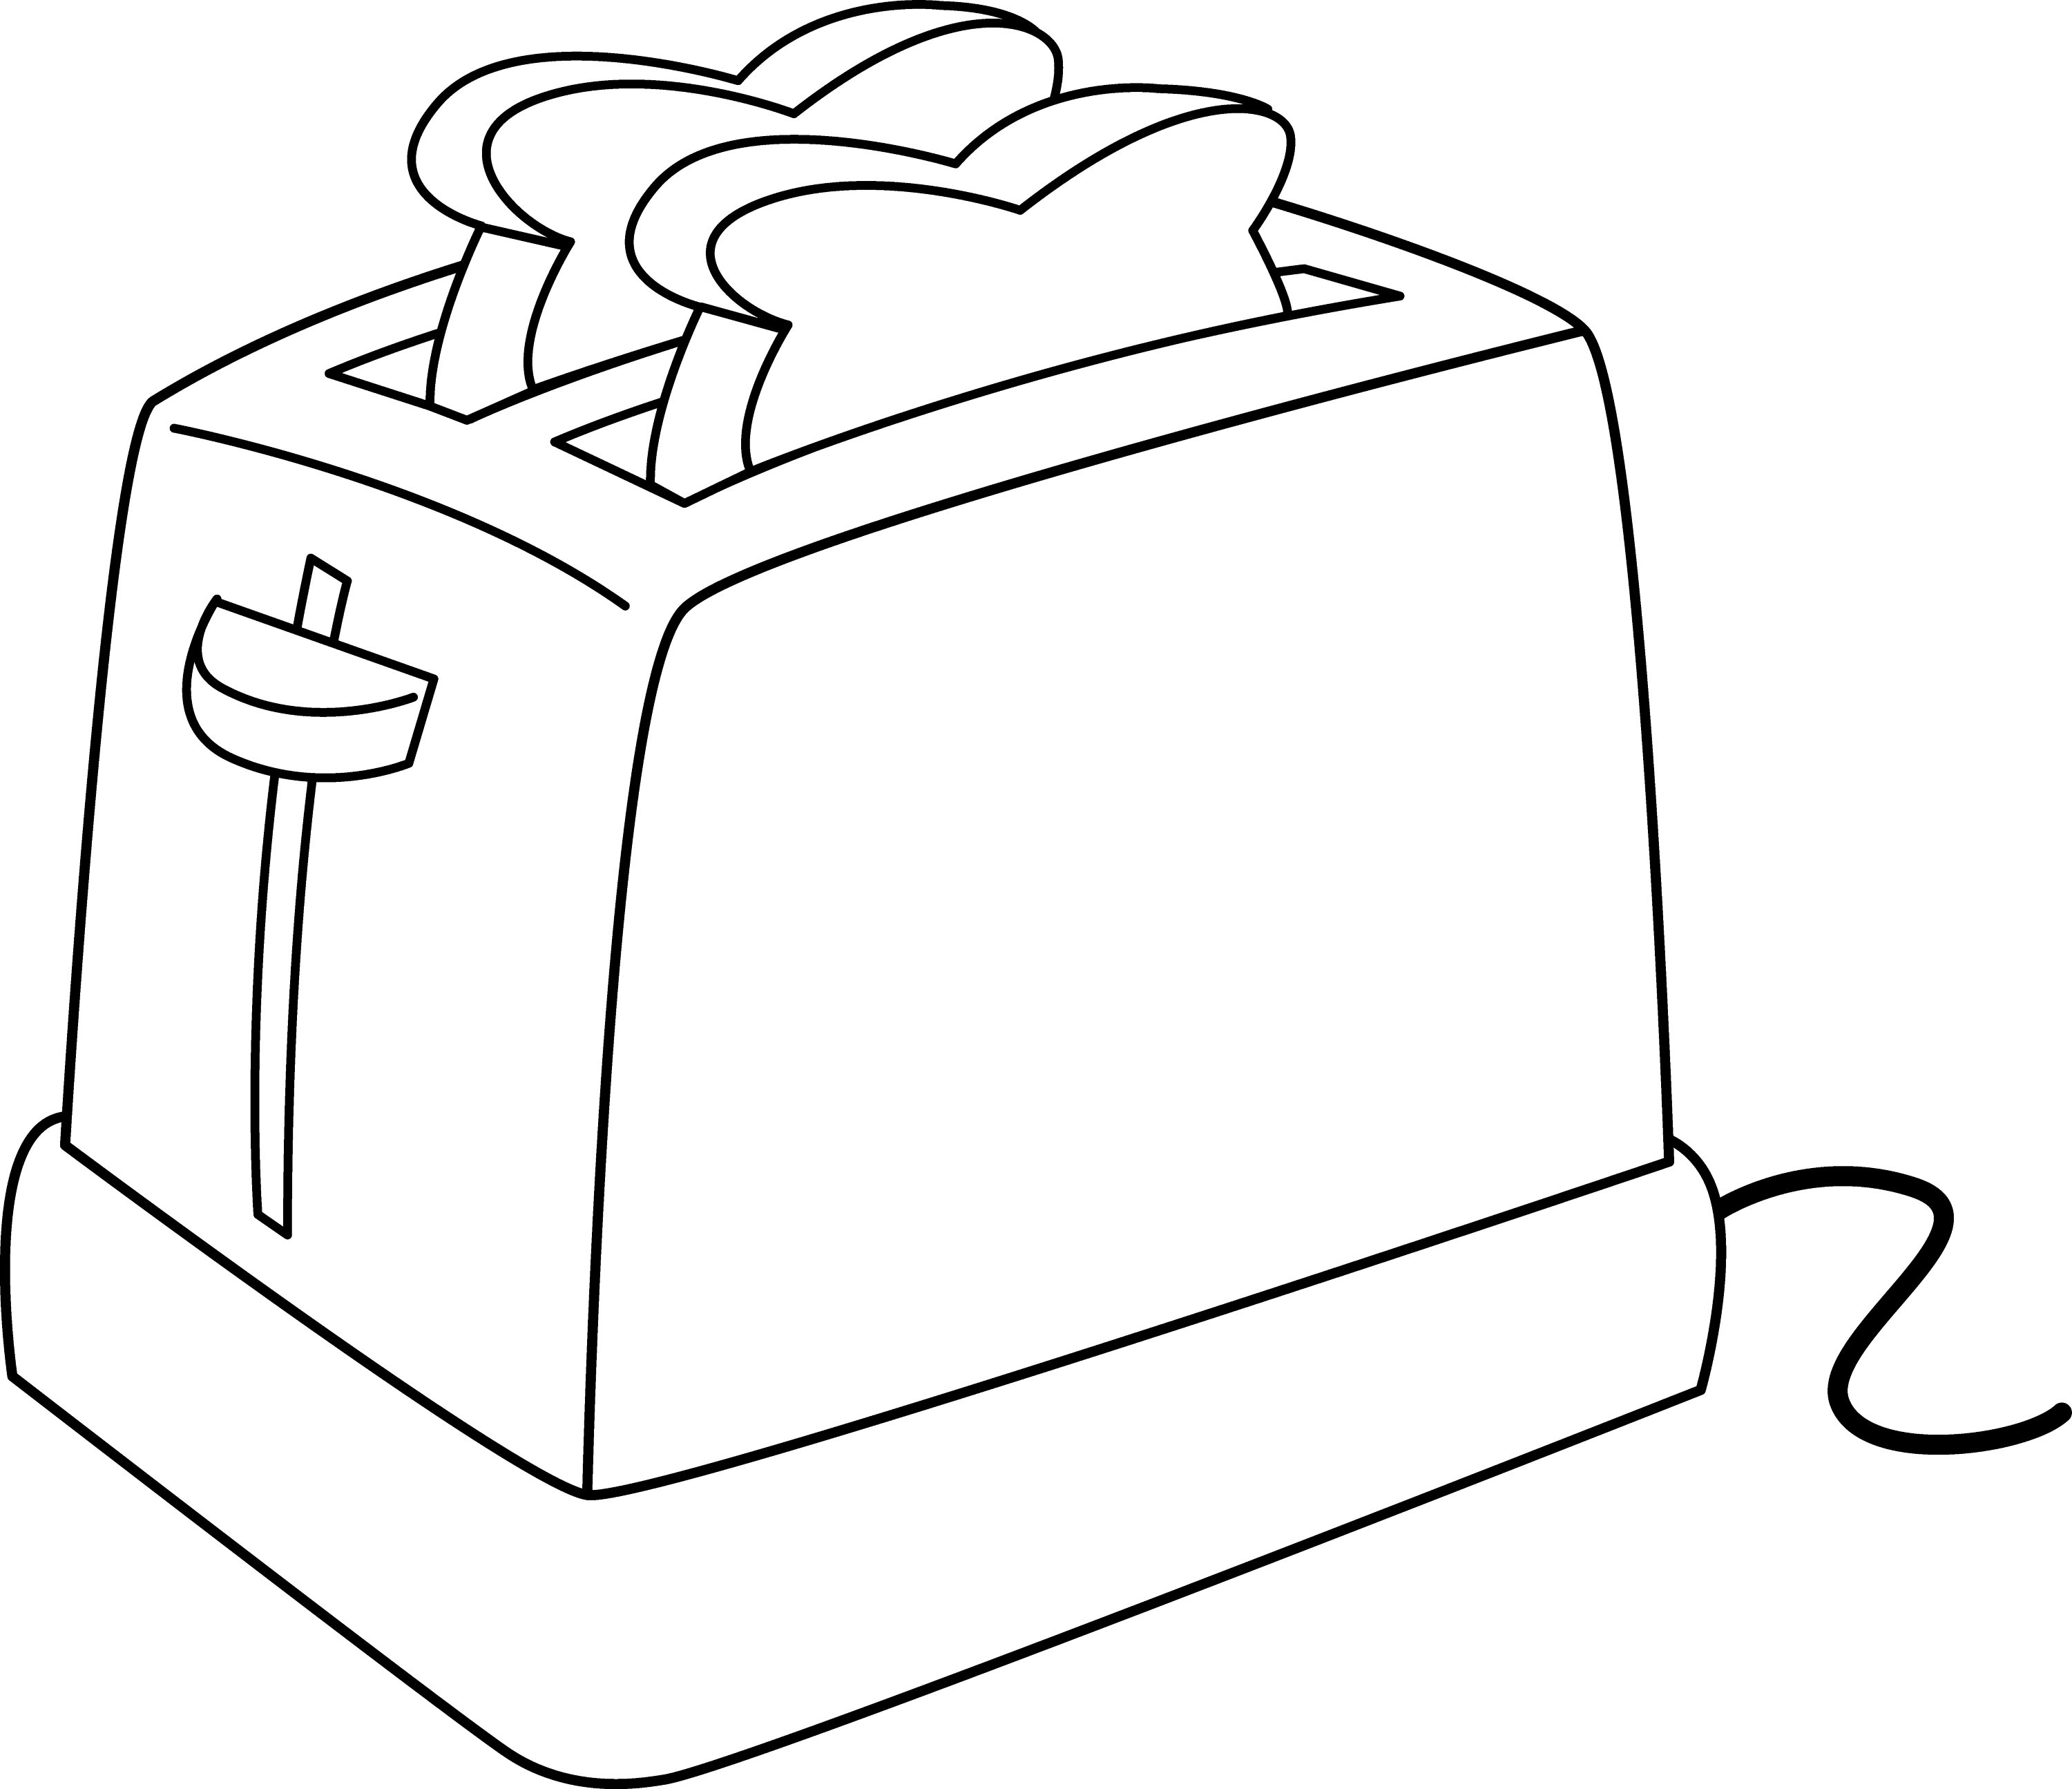 Bread Toaster Drawing Electric Toaster Line Art